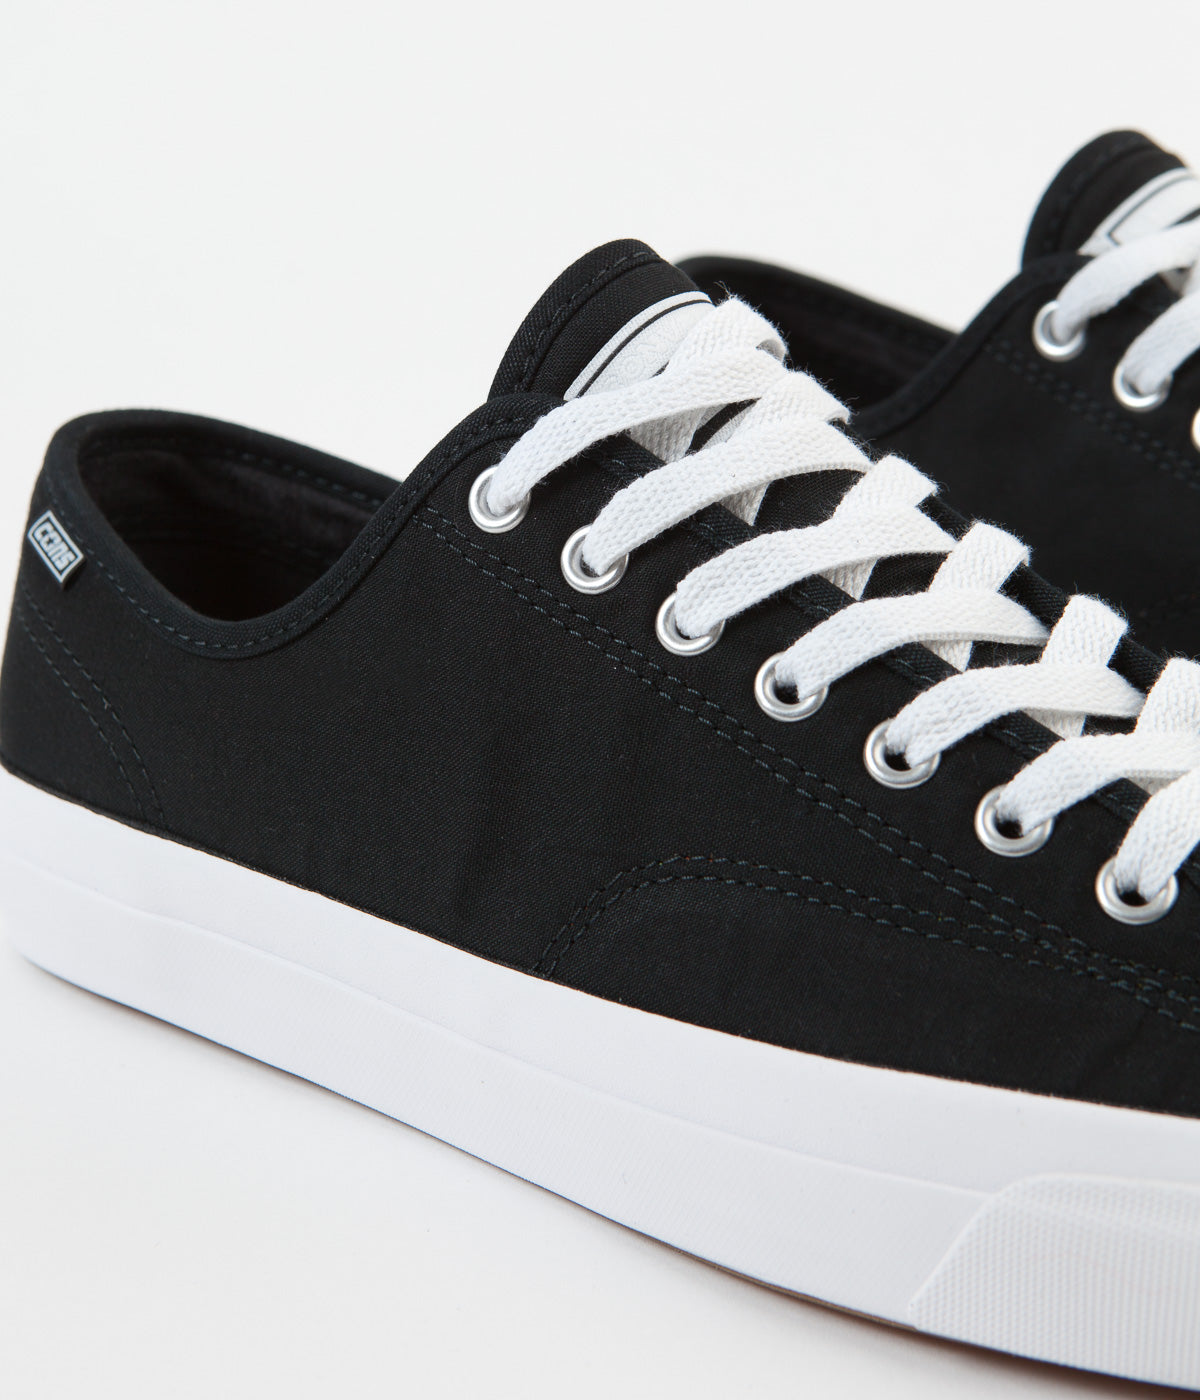 Converse Jack Purcell Pro Ox Archive Print Shoes - Black / White / Black